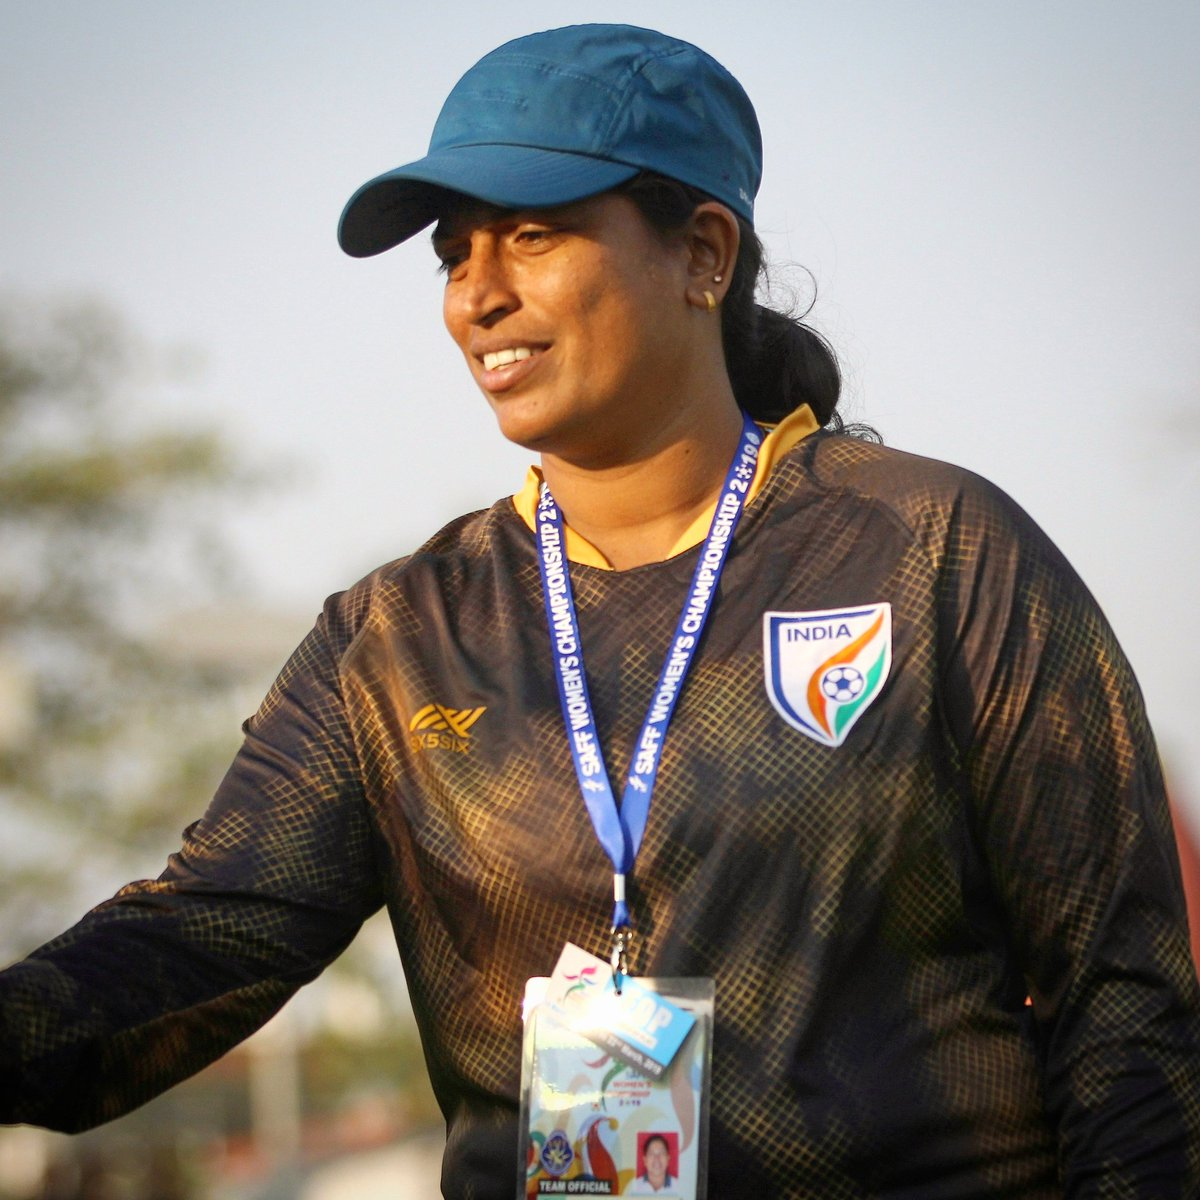 This week, we will be going LIVE 🔴 with the brains 🧠 behind the Indian Womens Team 🤩 Send in your questions for @maymolrocky using #AskMaymol 💬 , and catch her answer them on the #IndianFootball ⚽ Instagram page on Friday at 5.30 PM IST 🕠 #BackTheBlue 💙 #ShePower 👧